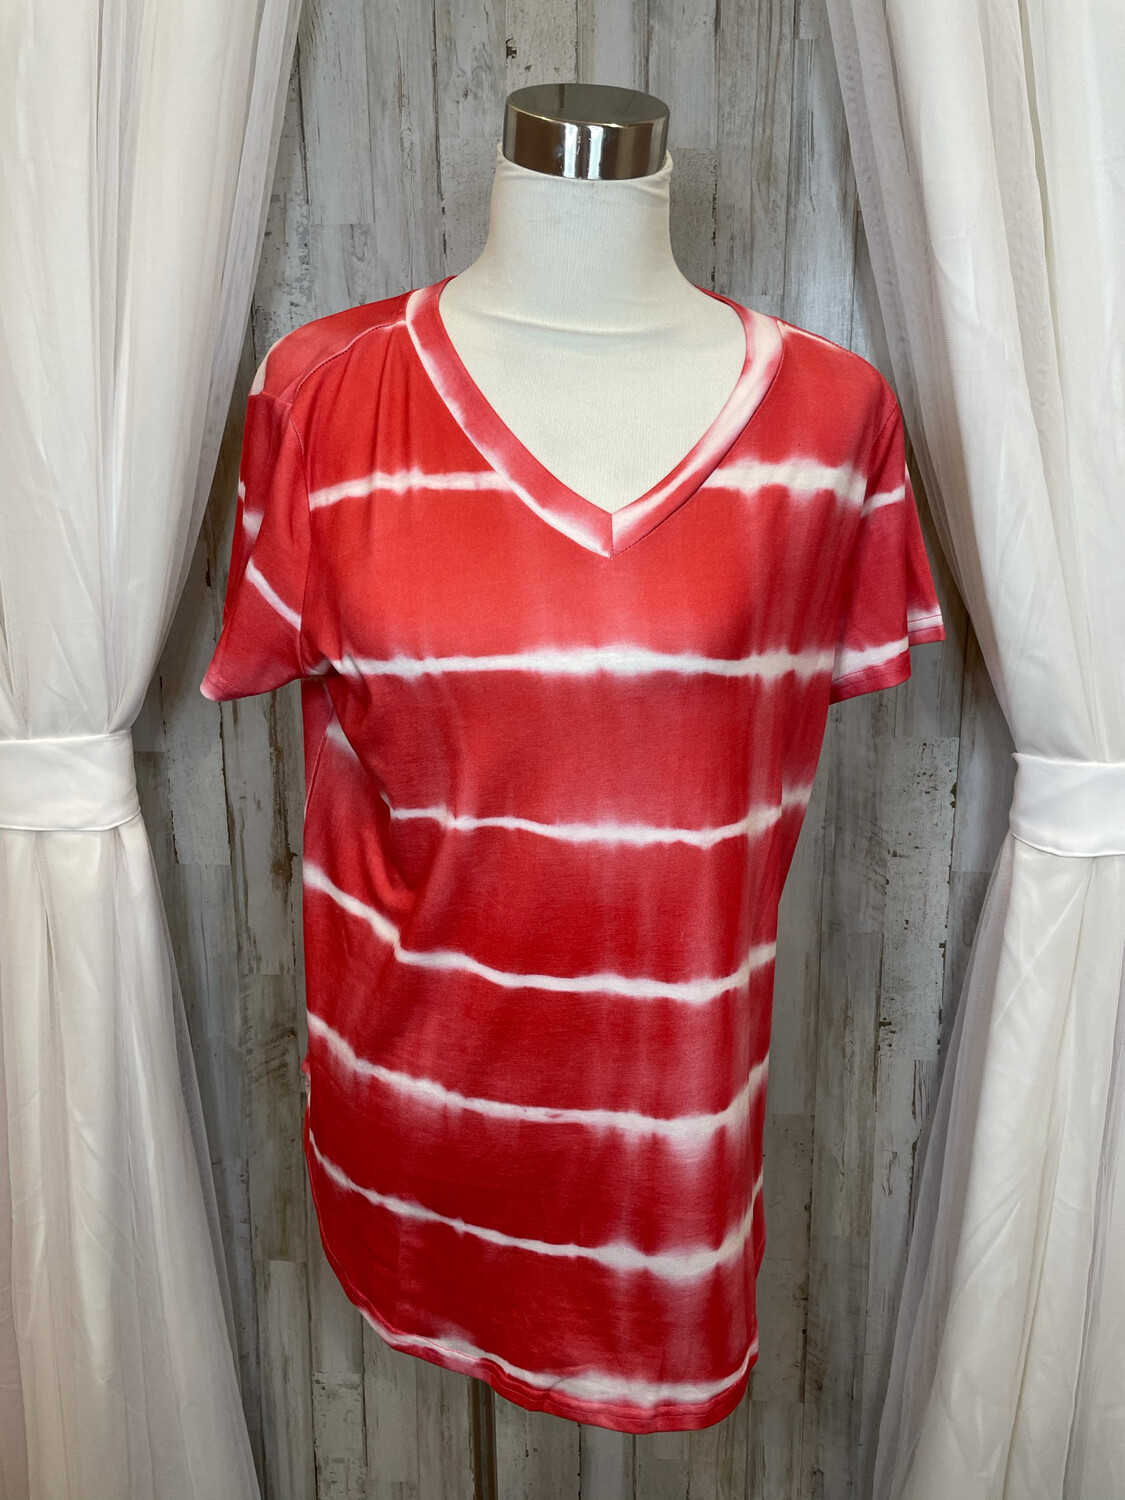 Tickled Teal Red & White Top - XL